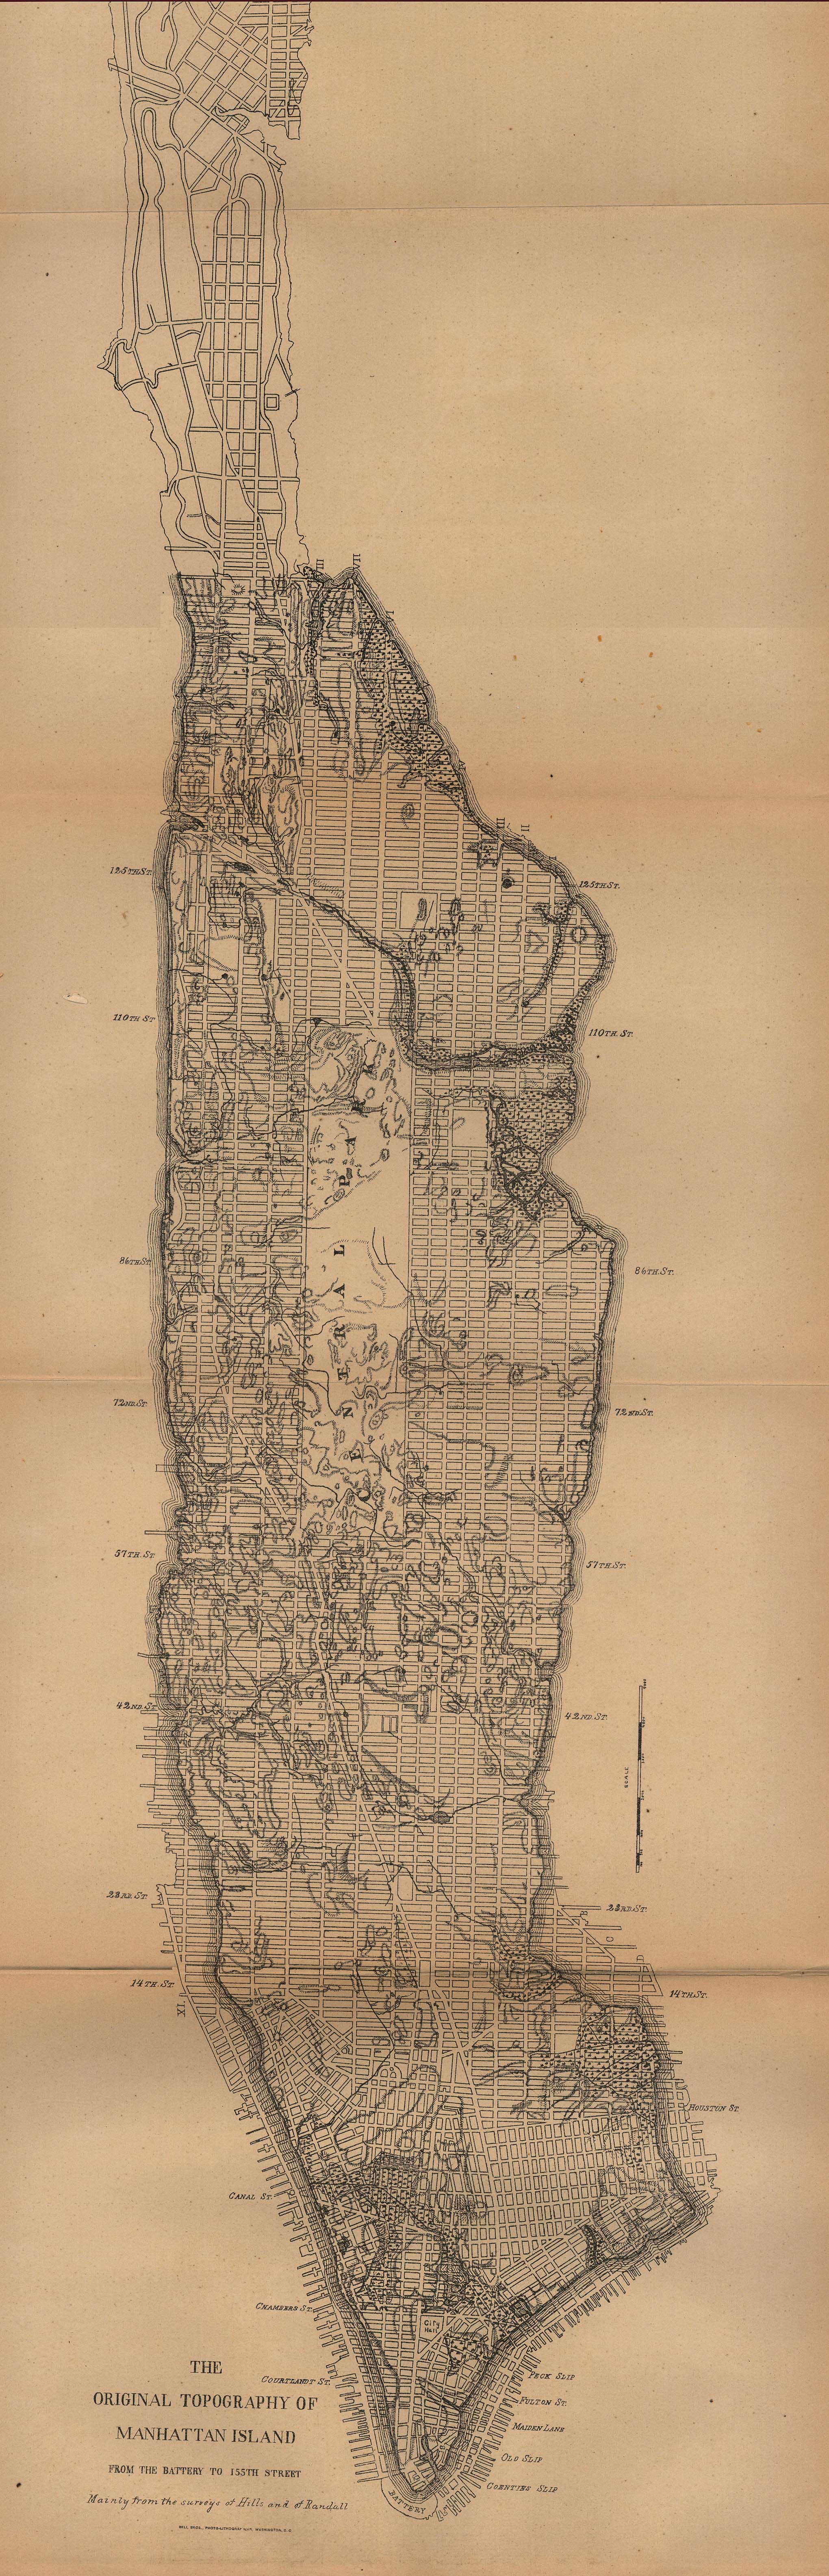 New York Maps PerryCasta eda Map Collection UT Library Online – Map Manhattan